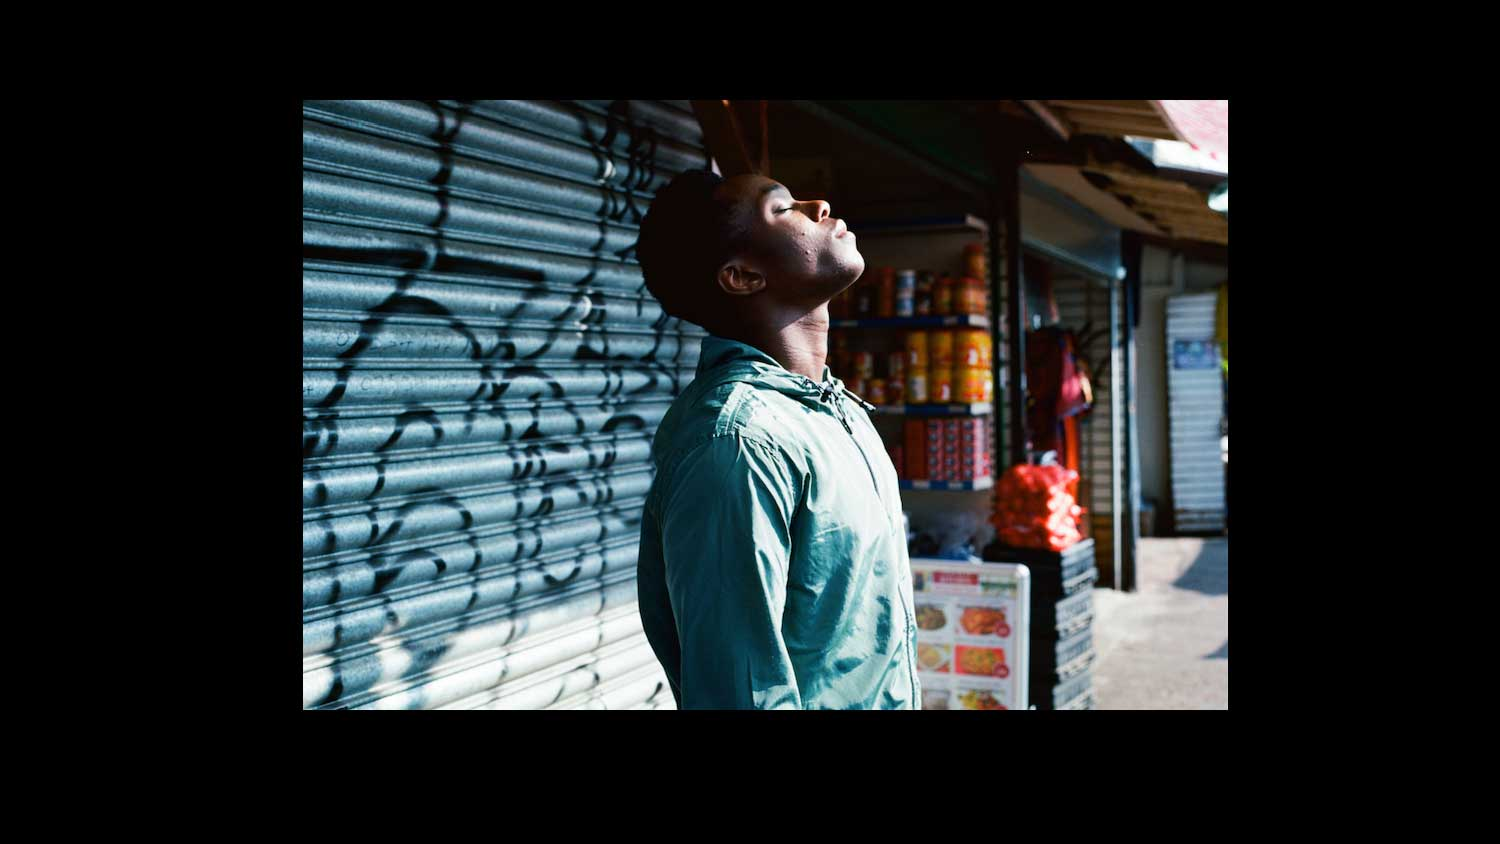 Wale Review – A Short Film That Delights - OC Movie Reviews - Movie Reviews, Movie News, Documentary Reviews, Short Films, Short Film Reviews, Trailers, Movie Trailers, Interviews, film reviews, film news, hollywood, indie films, documentaries